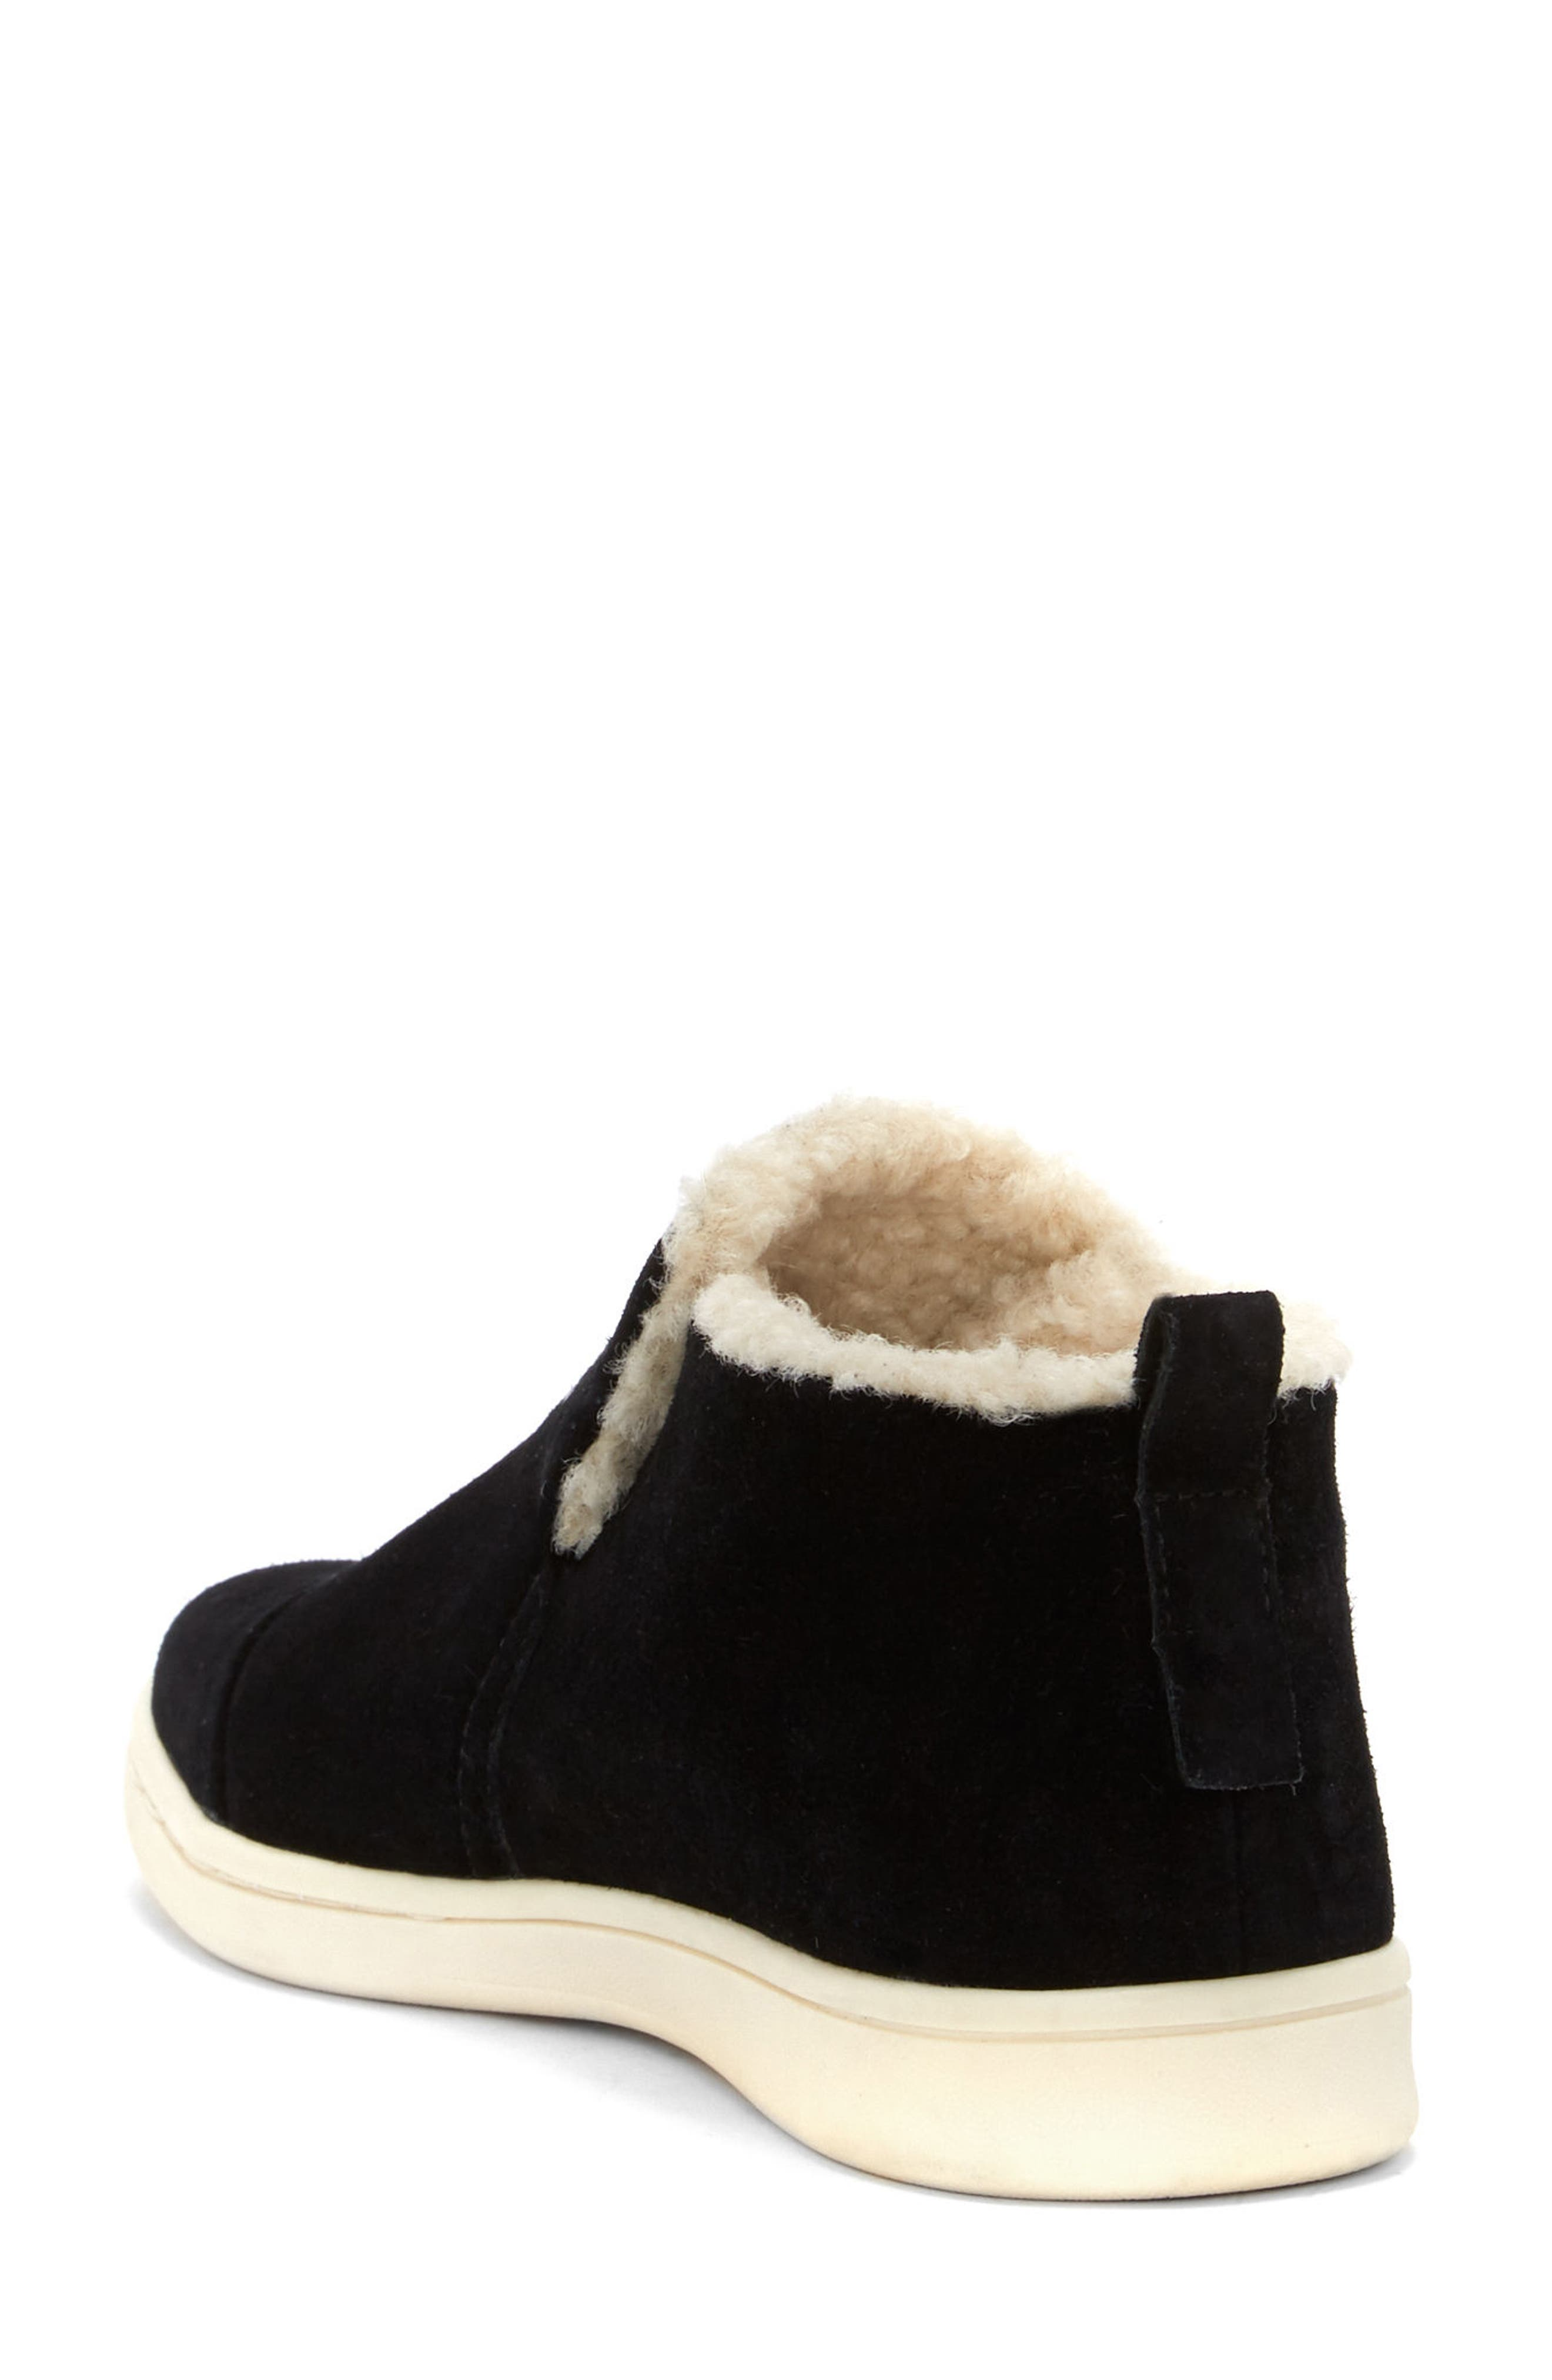 Cambon Faux-Shearling Lined Bootie,                             Alternate thumbnail 2, color,                             002